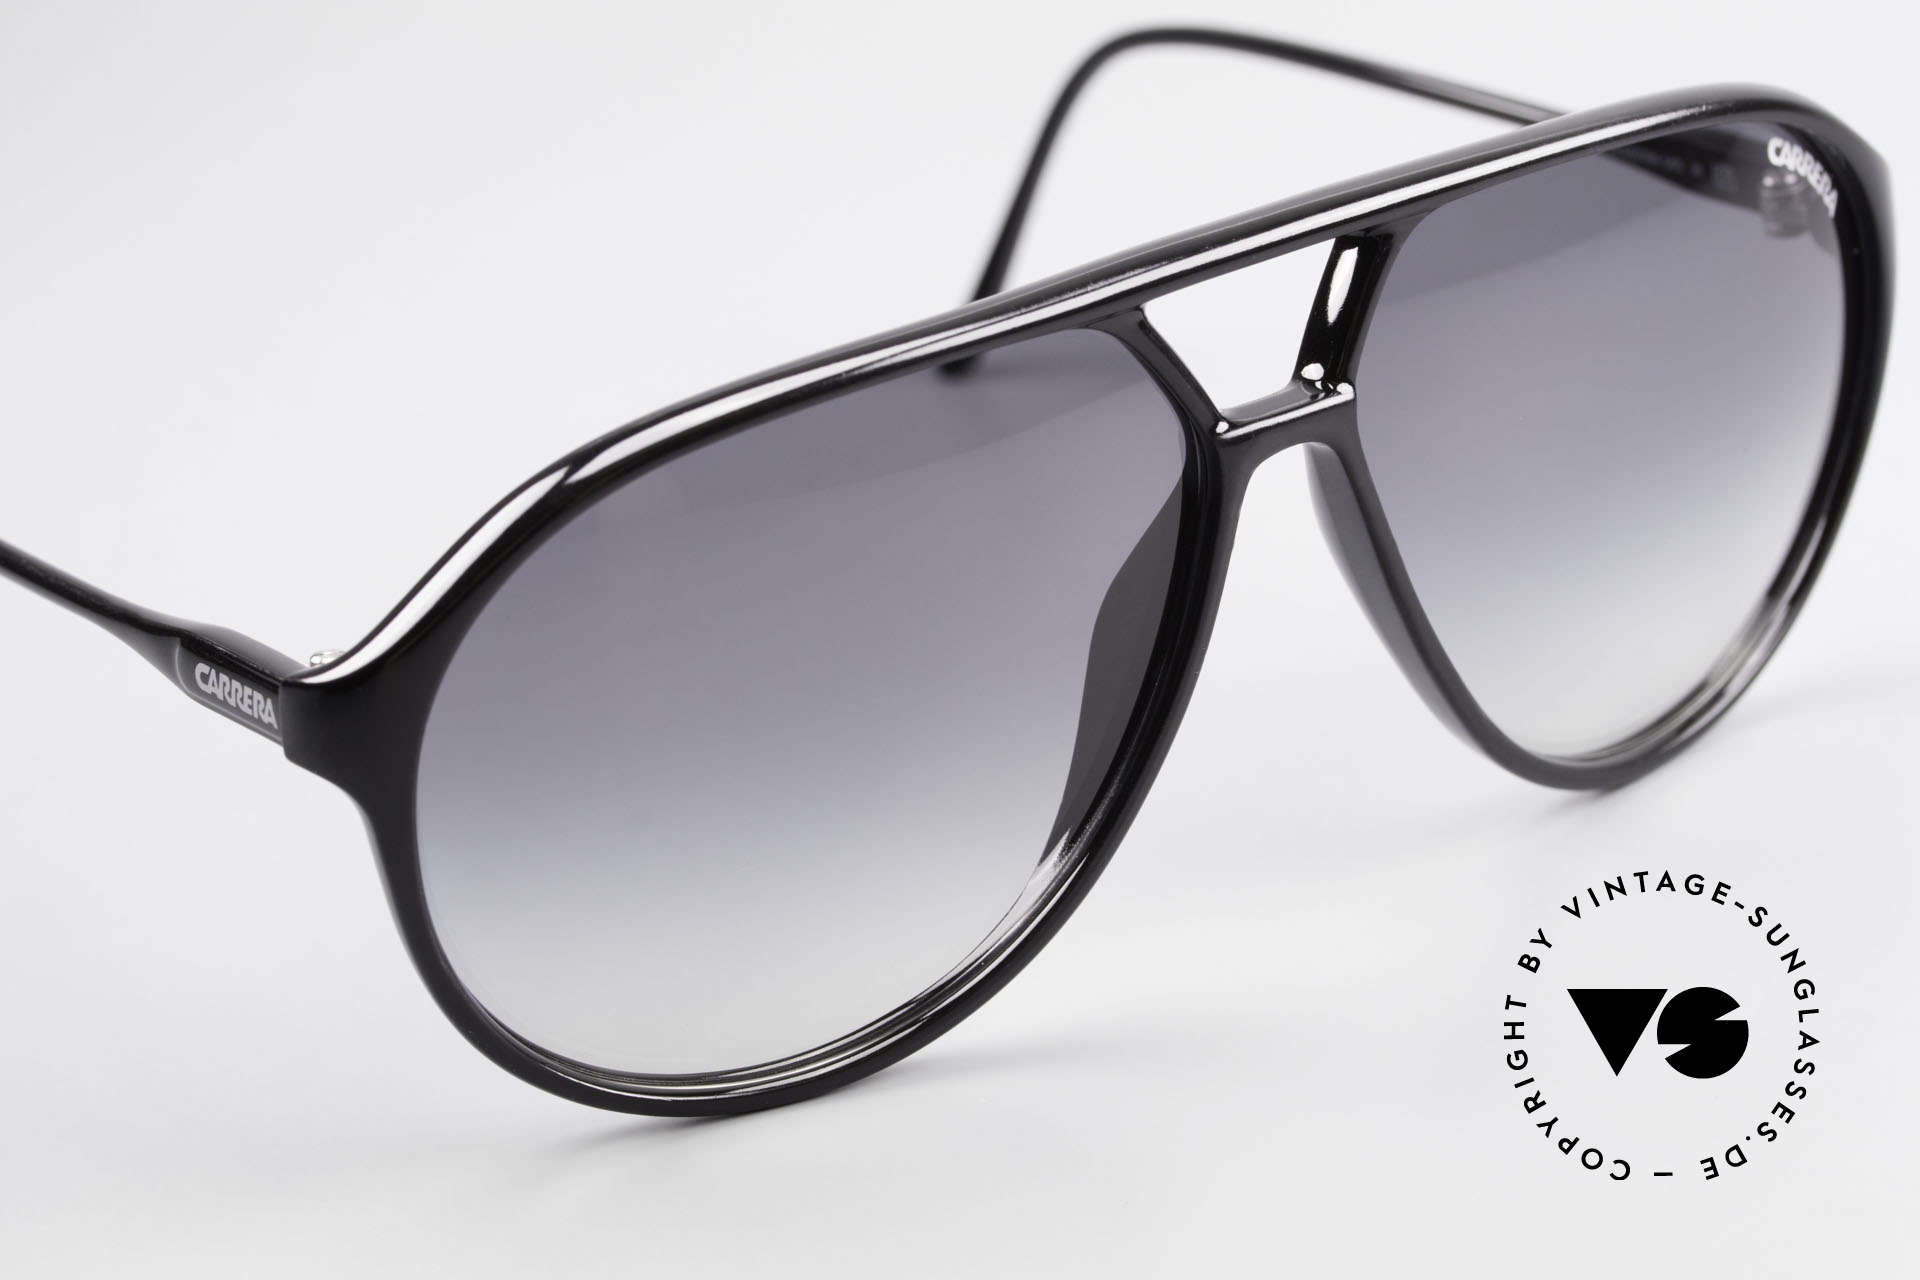 Carrera 5425 80's Shades With Extra Lenses, unworn, NOS (like all our rare vintage 80's sunglasses), Made for Men